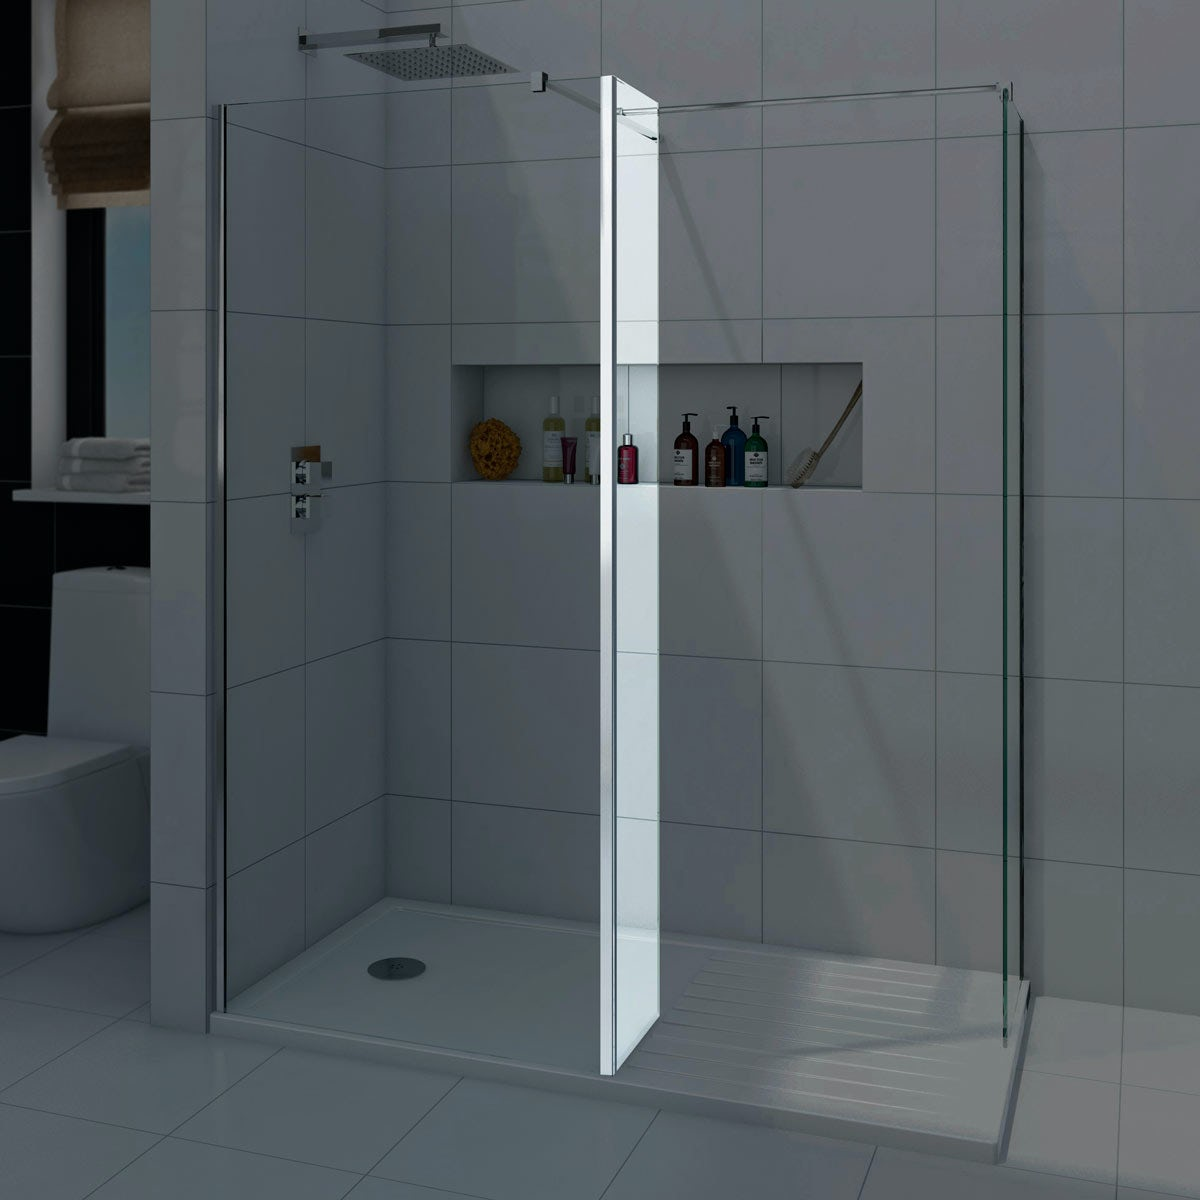 Mode luxury 8mm walk in shower enclosure with tray for Wet room shower screen 400mm